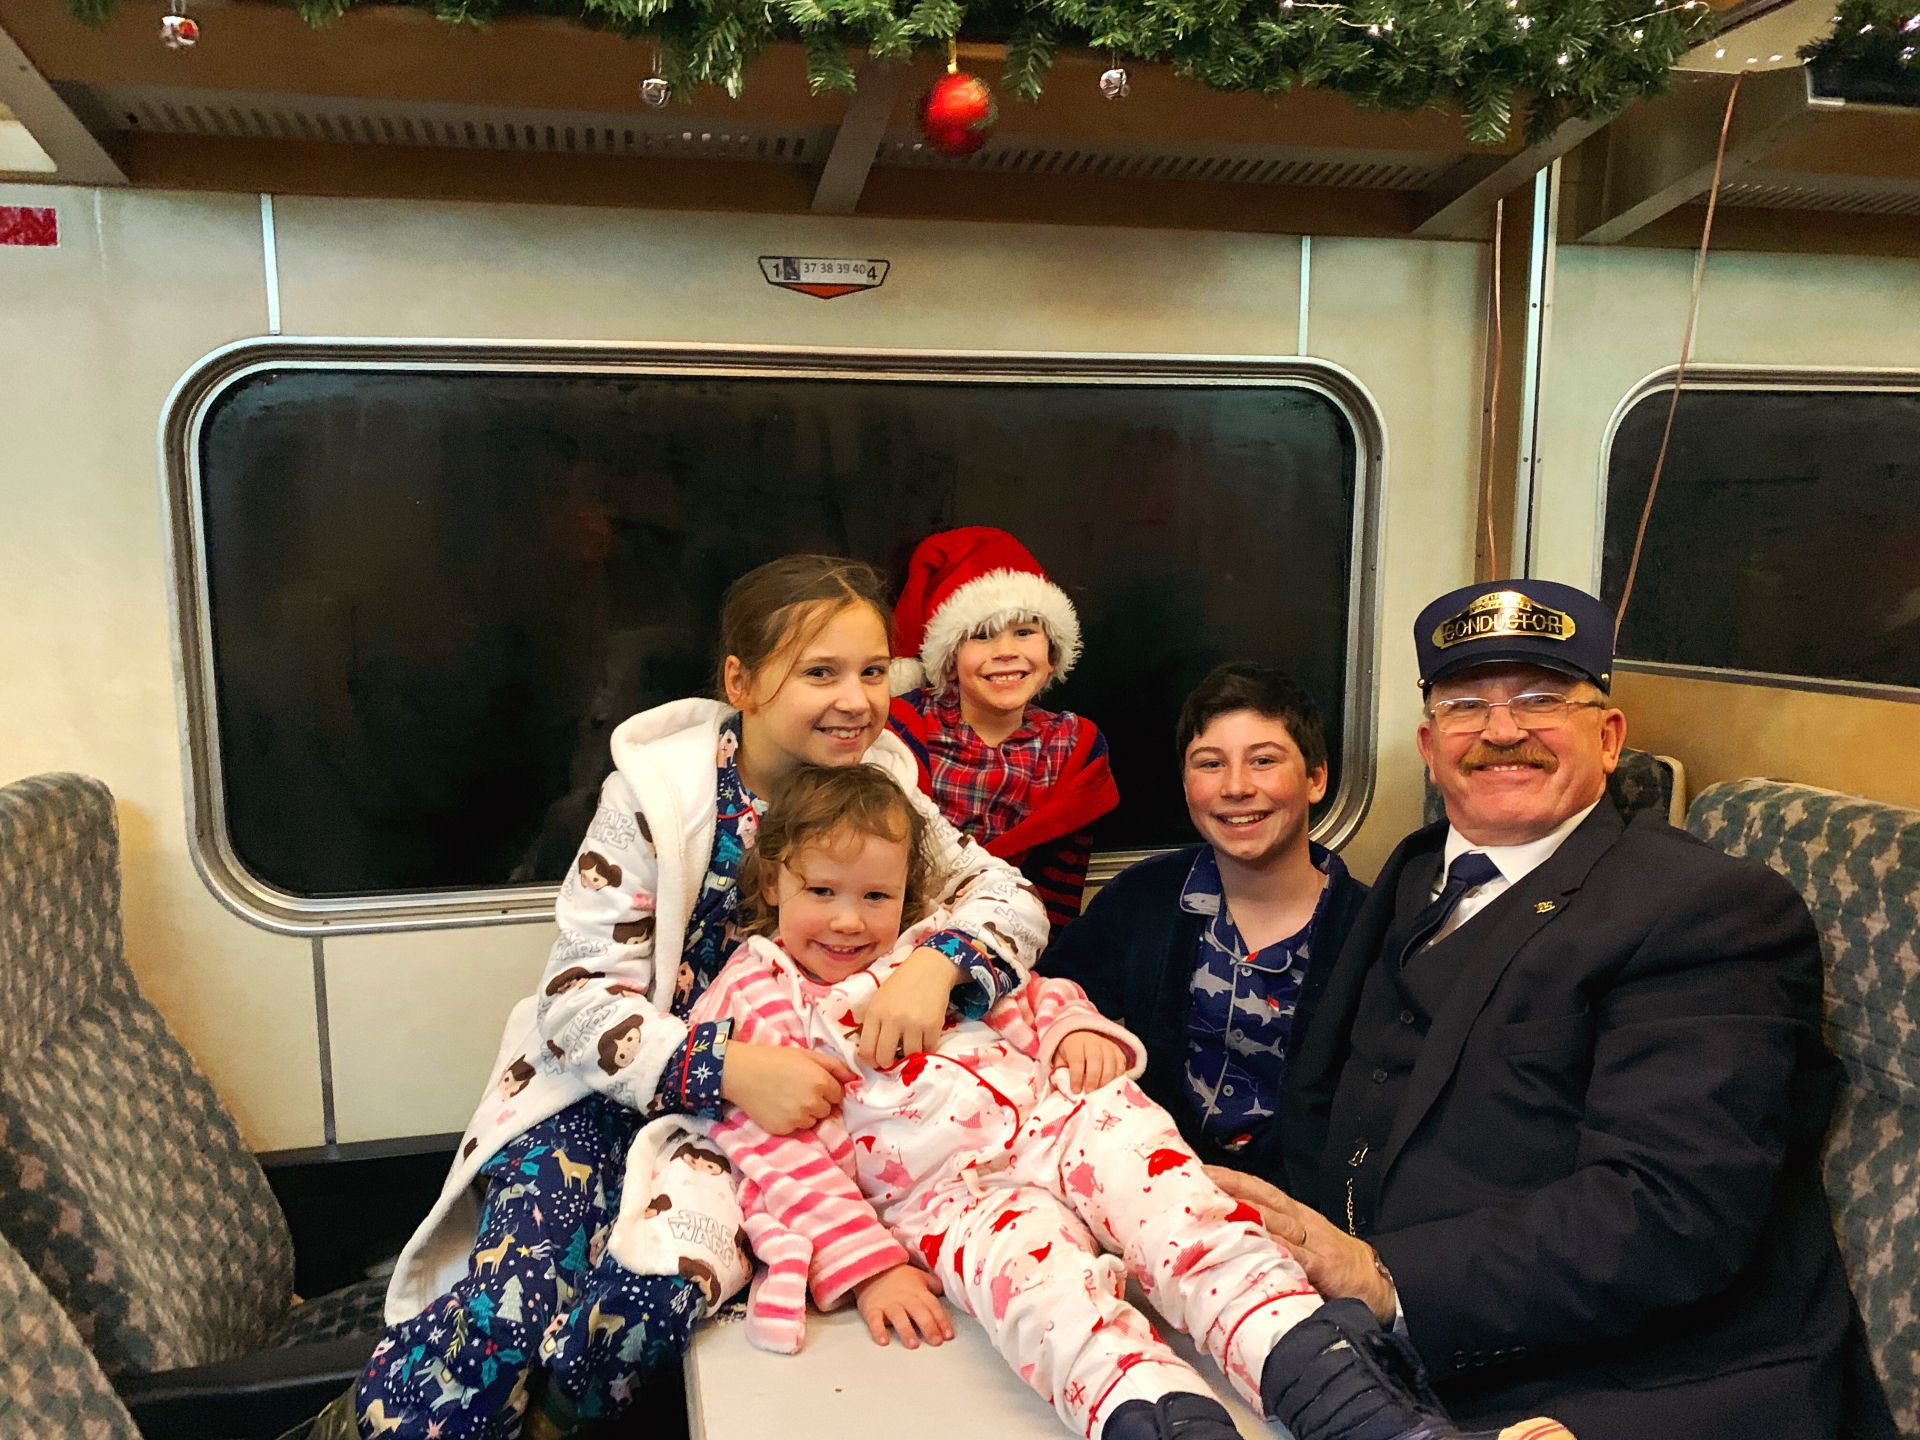 4 children posing for a picture with a train conductor